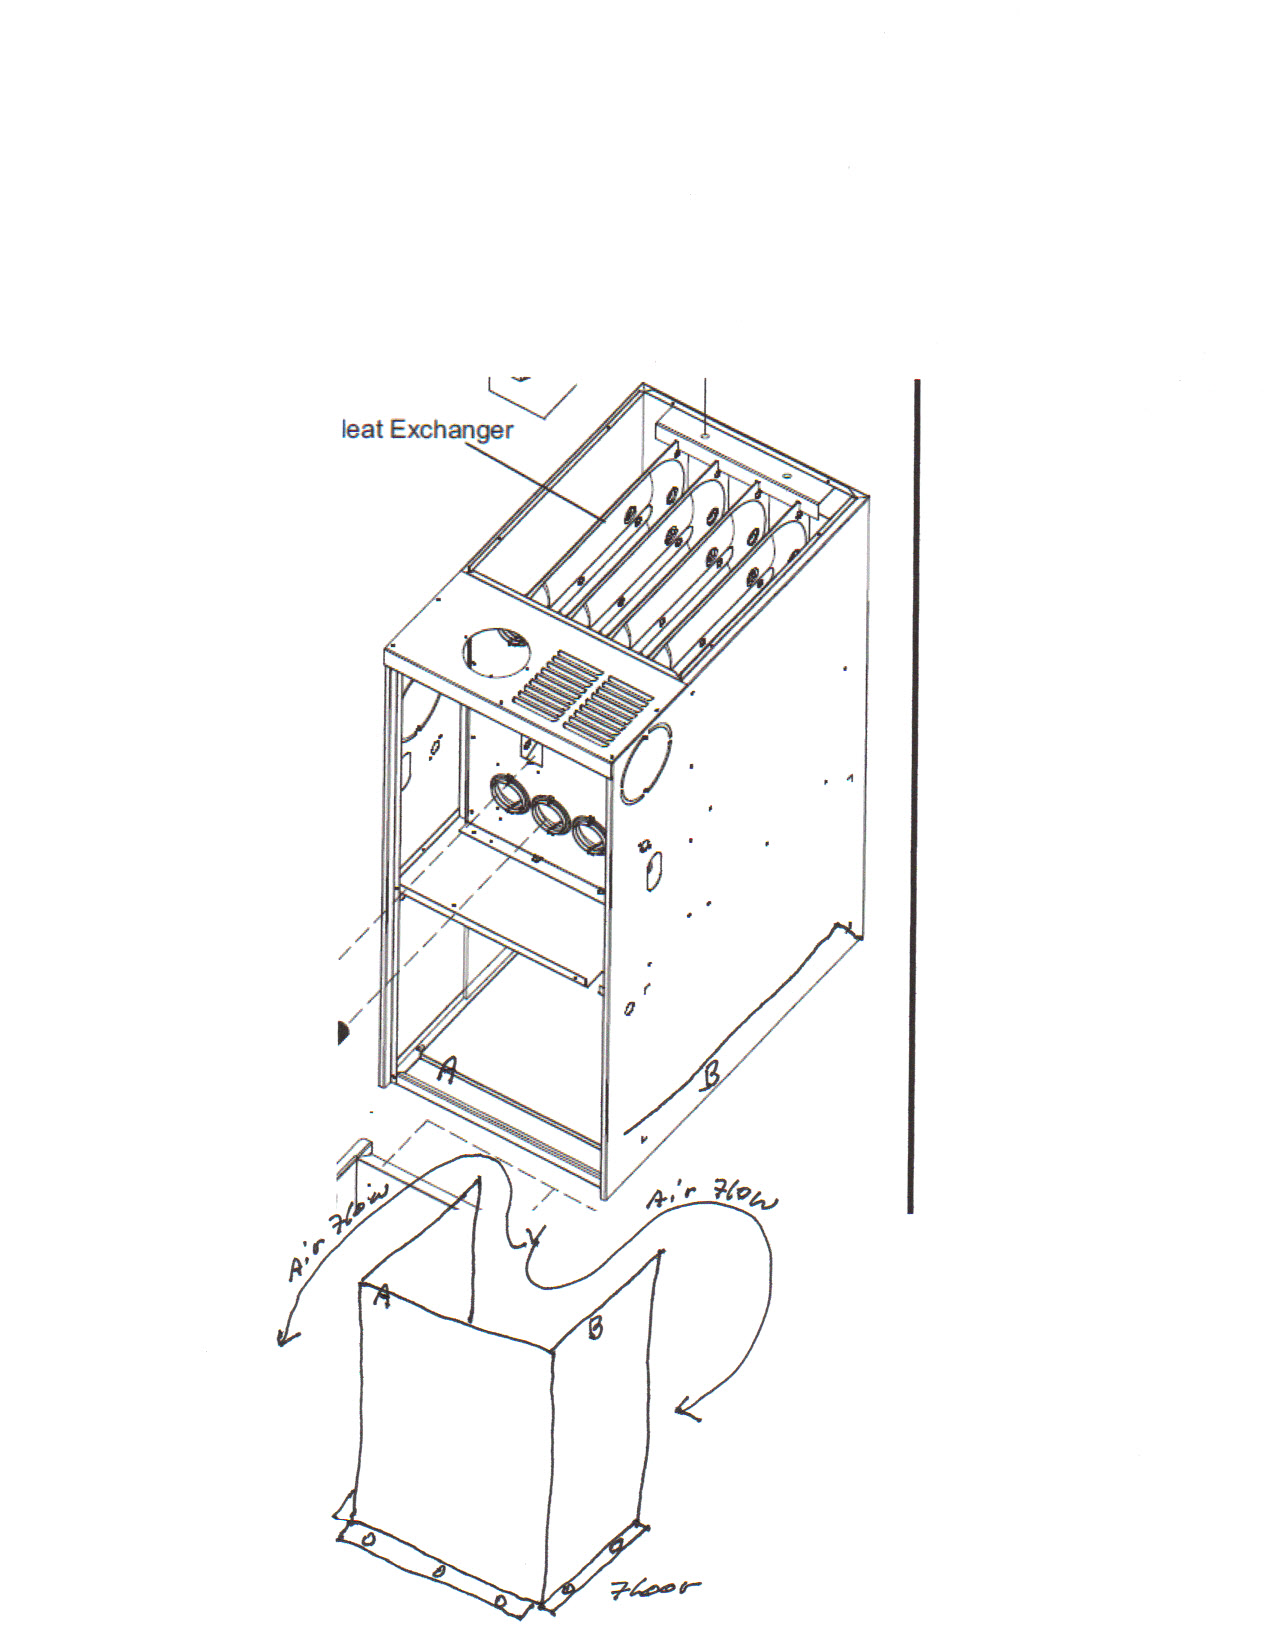 Furnace Size Central Electric Eb15b Wiring Diagram Your And Air Conditioner Intake Vent Is Located